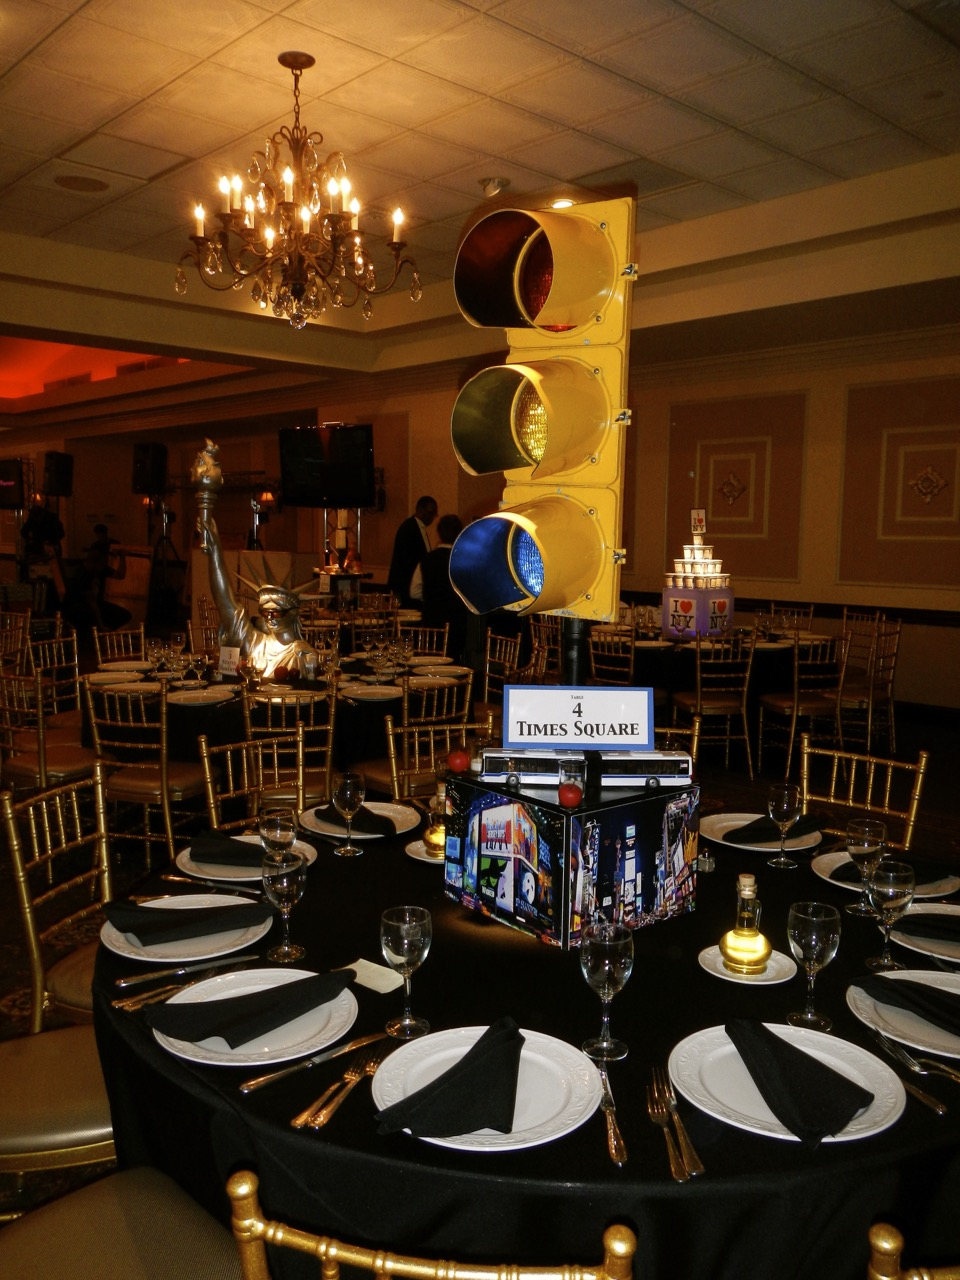 Event+Decor+Design+Lighting+NJ+NYC+Eggsotic+Events+NJs+Best+Event+Decorator+Event+Lighting+Event+Design+Wedding+Bar+Mitzvah+Bat+Mitzvah+Gala+Fundraiser+Social+Corporate+08.jpg